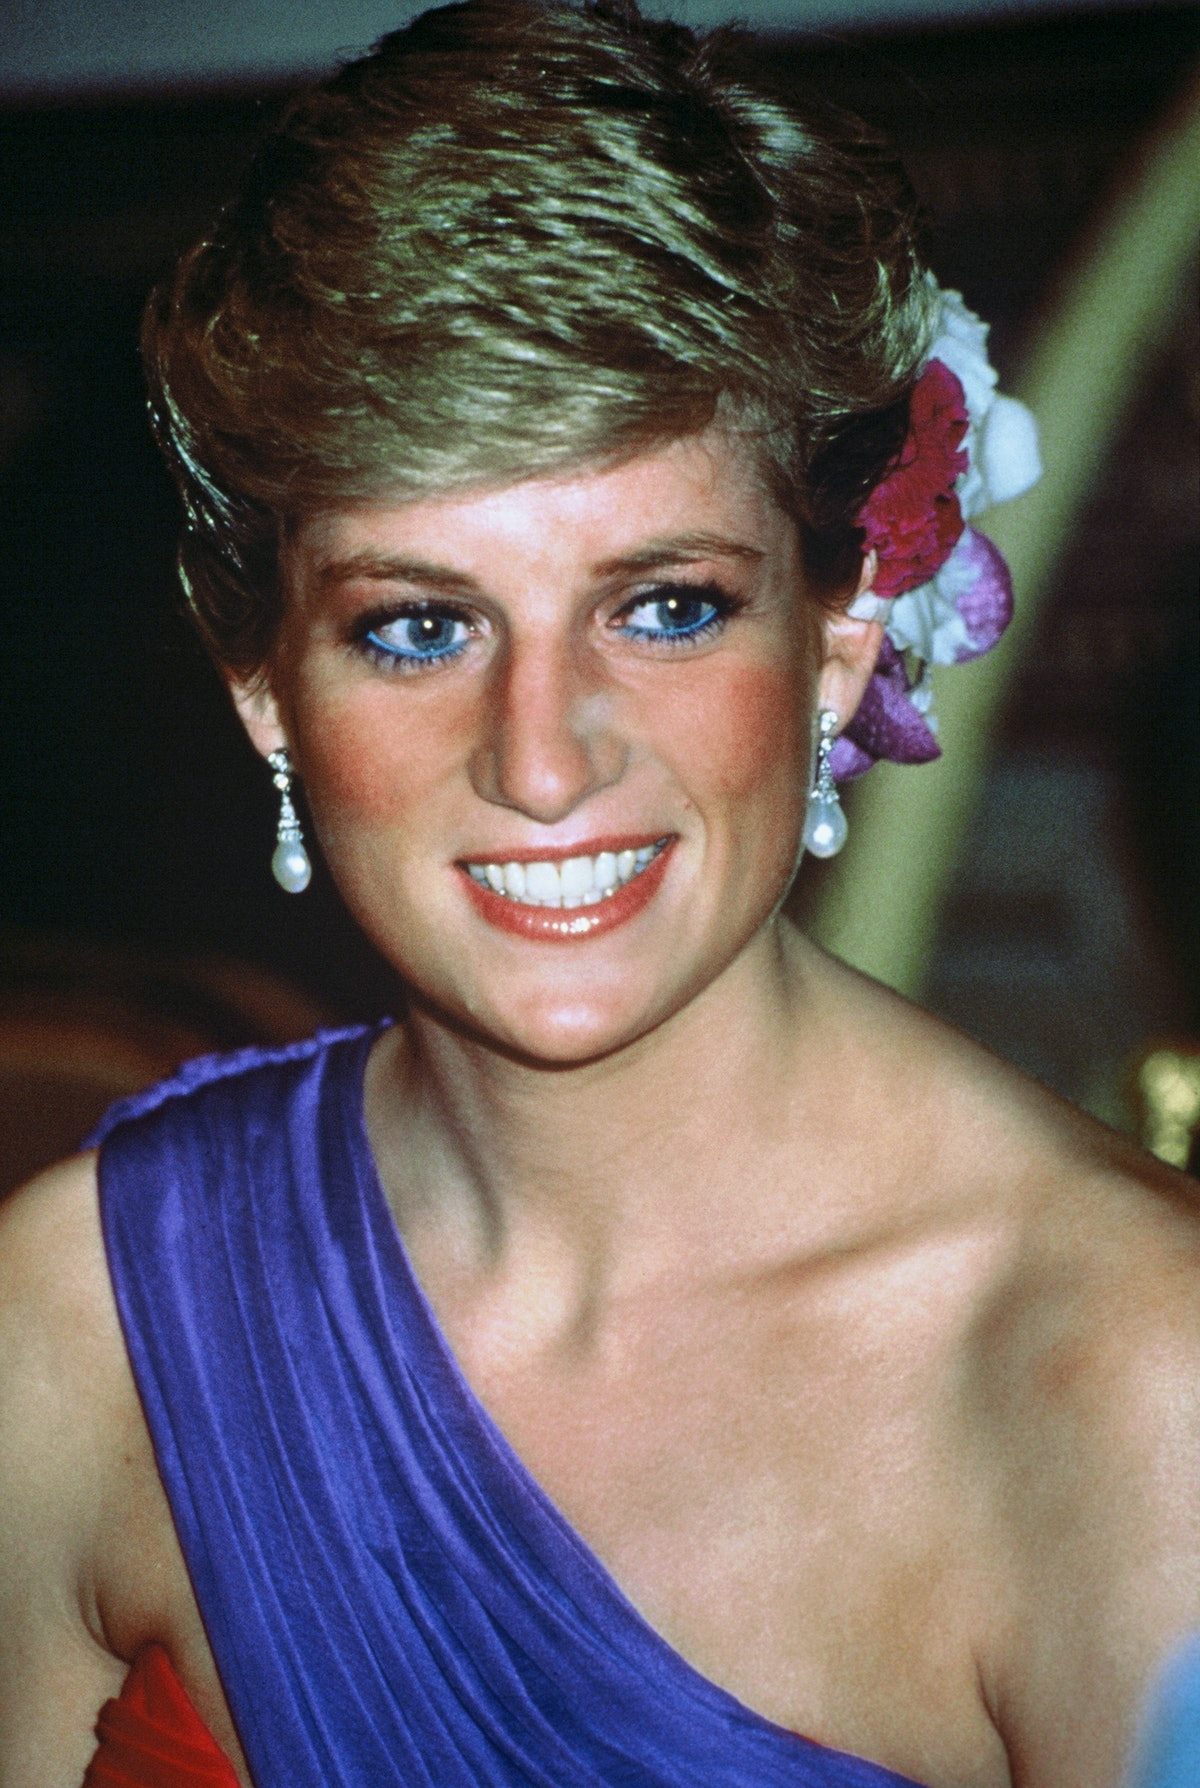 One of Princess Diana's most iconic hair moments: a chic updo with flowers.